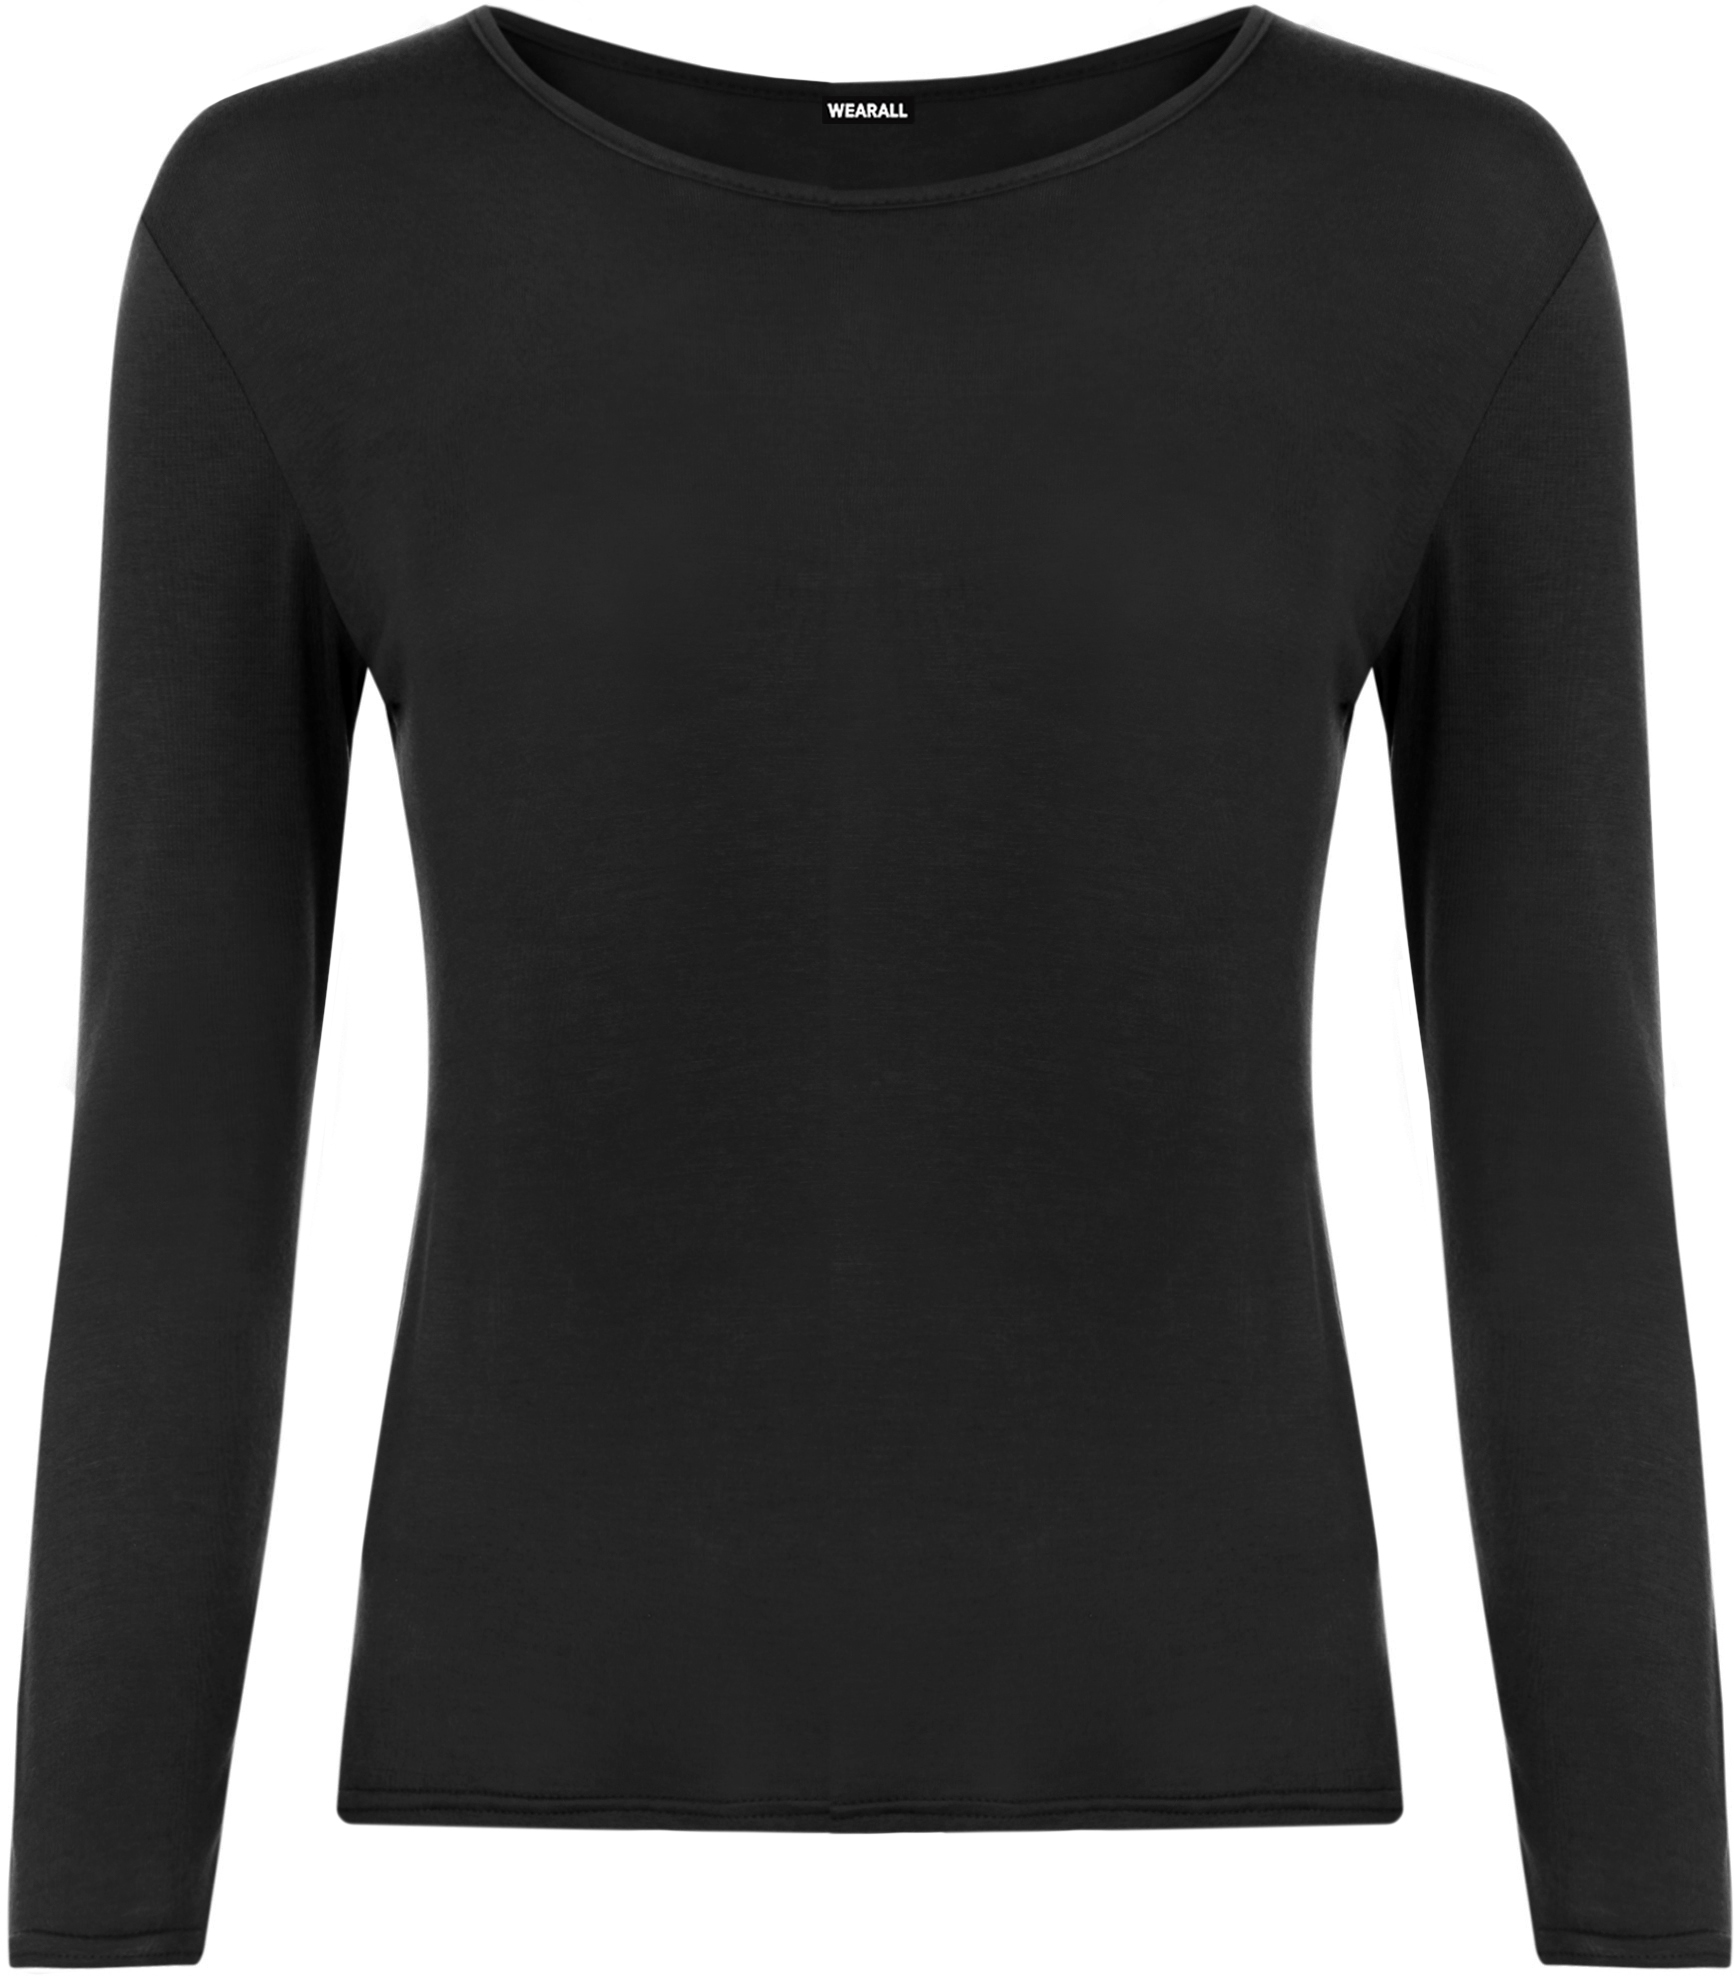 New womens long sleeve round neck plain basic ladies for Womens black tee shirt